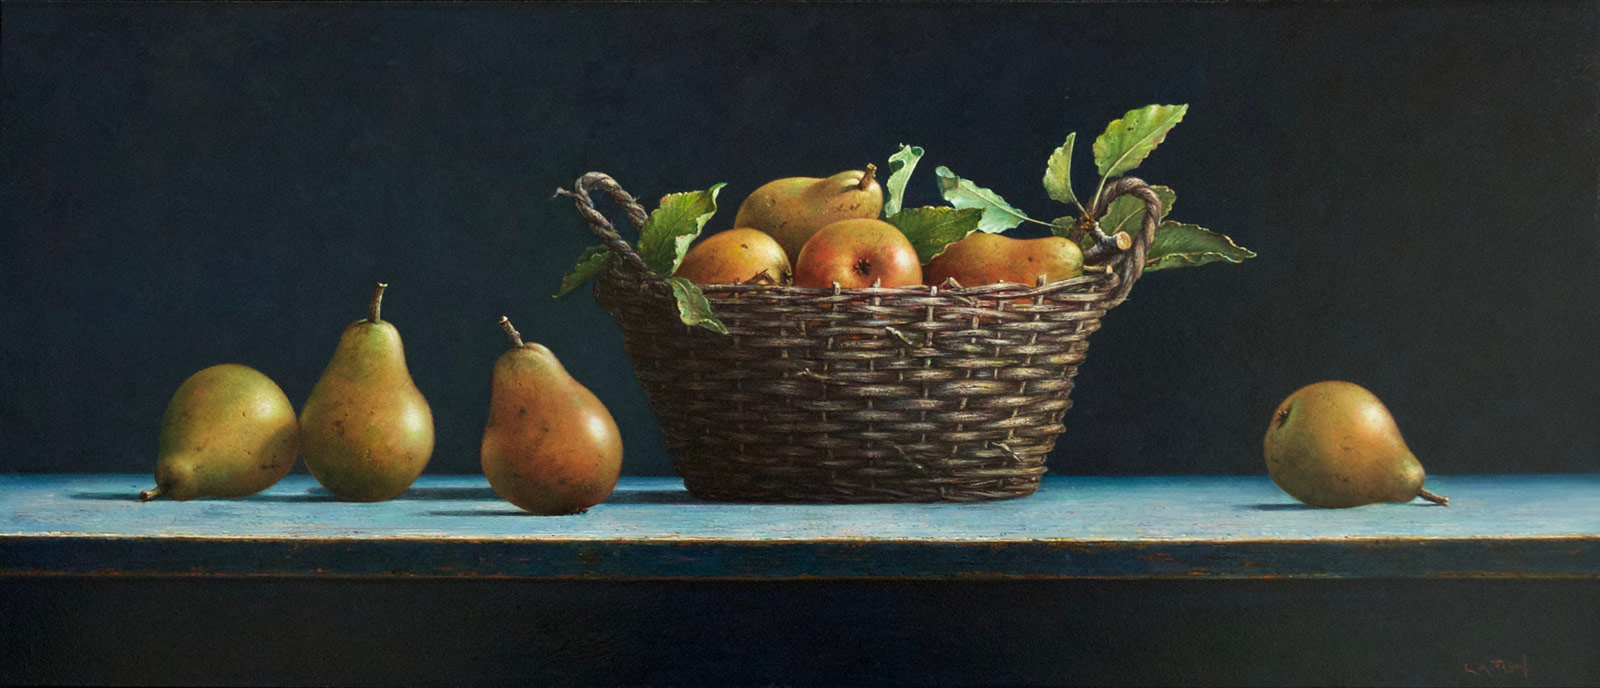 oil painting by artist lion feijen of pears in a basket